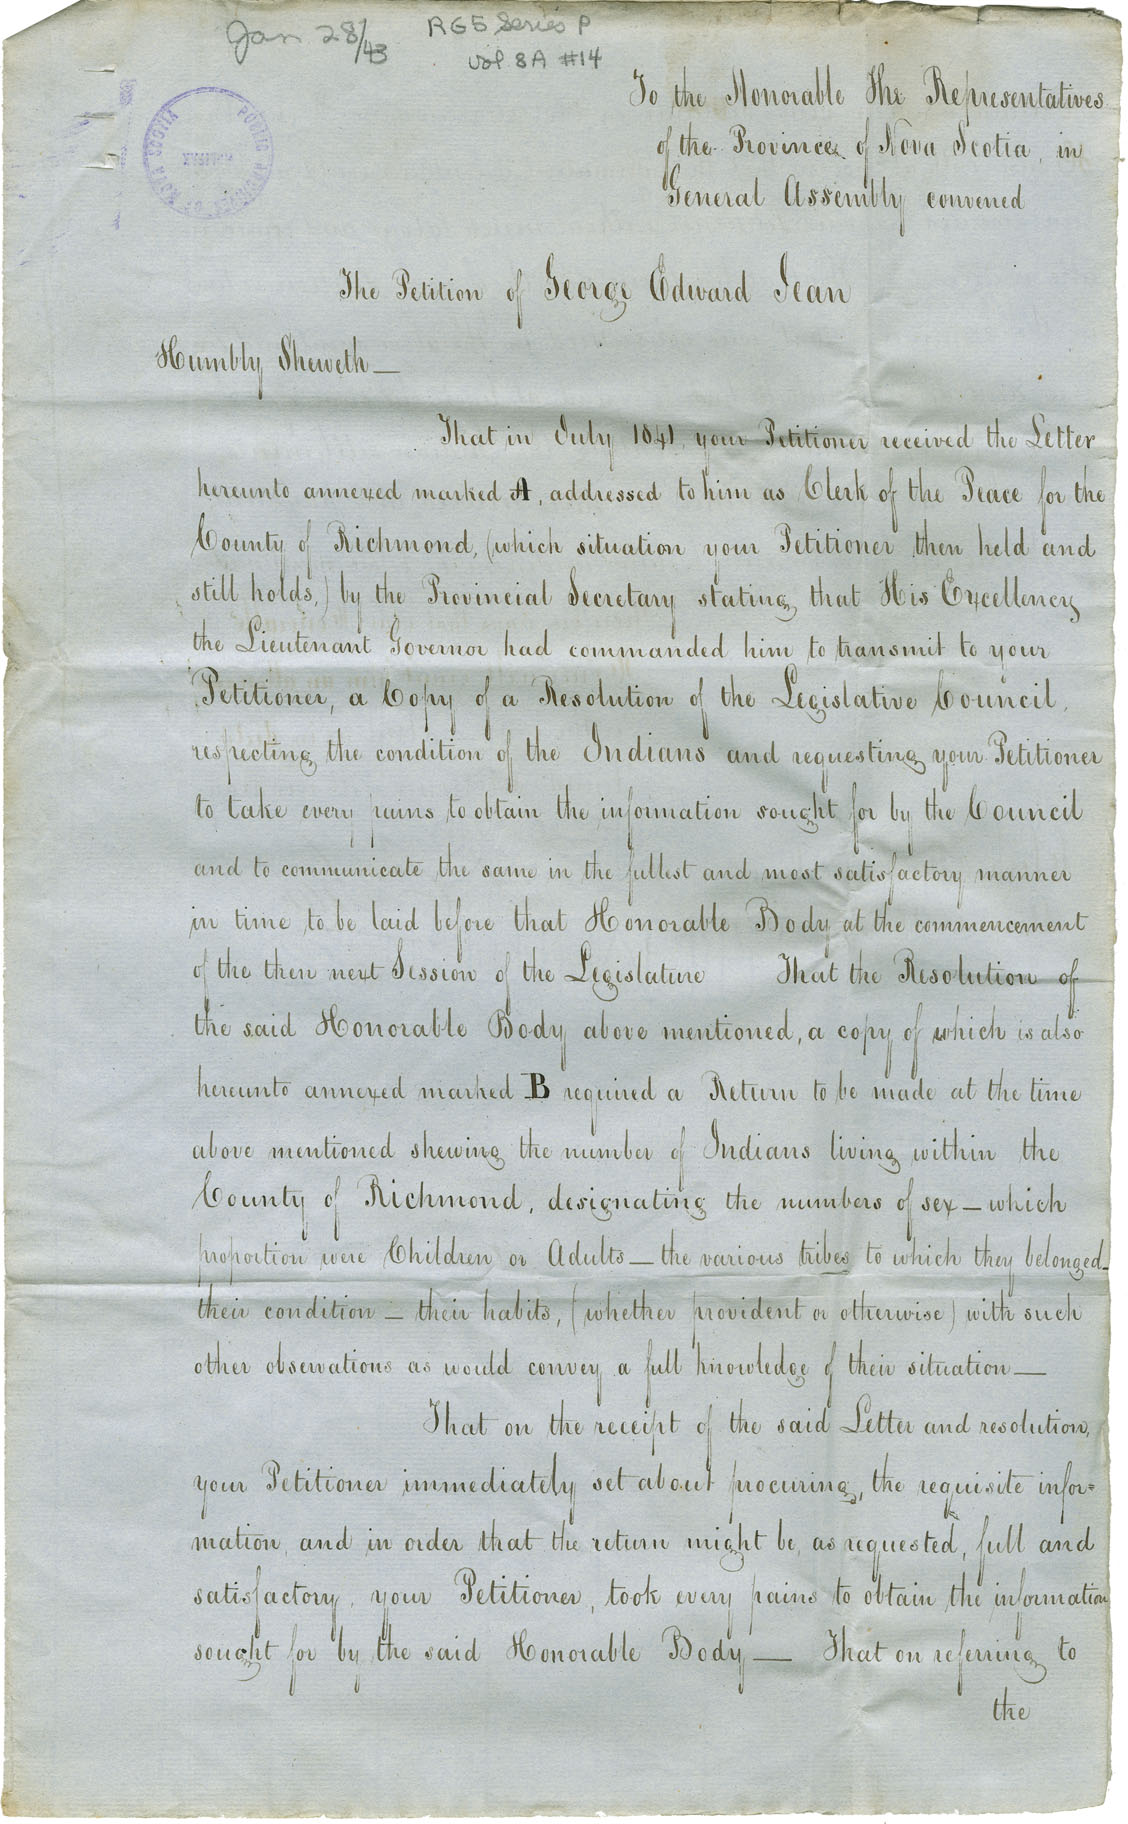 Letter from Rupert D. George, Provincial Secretary's Office, to George Edward Jean regarding a report on the state of the Mi'kmaq in Richmond County.